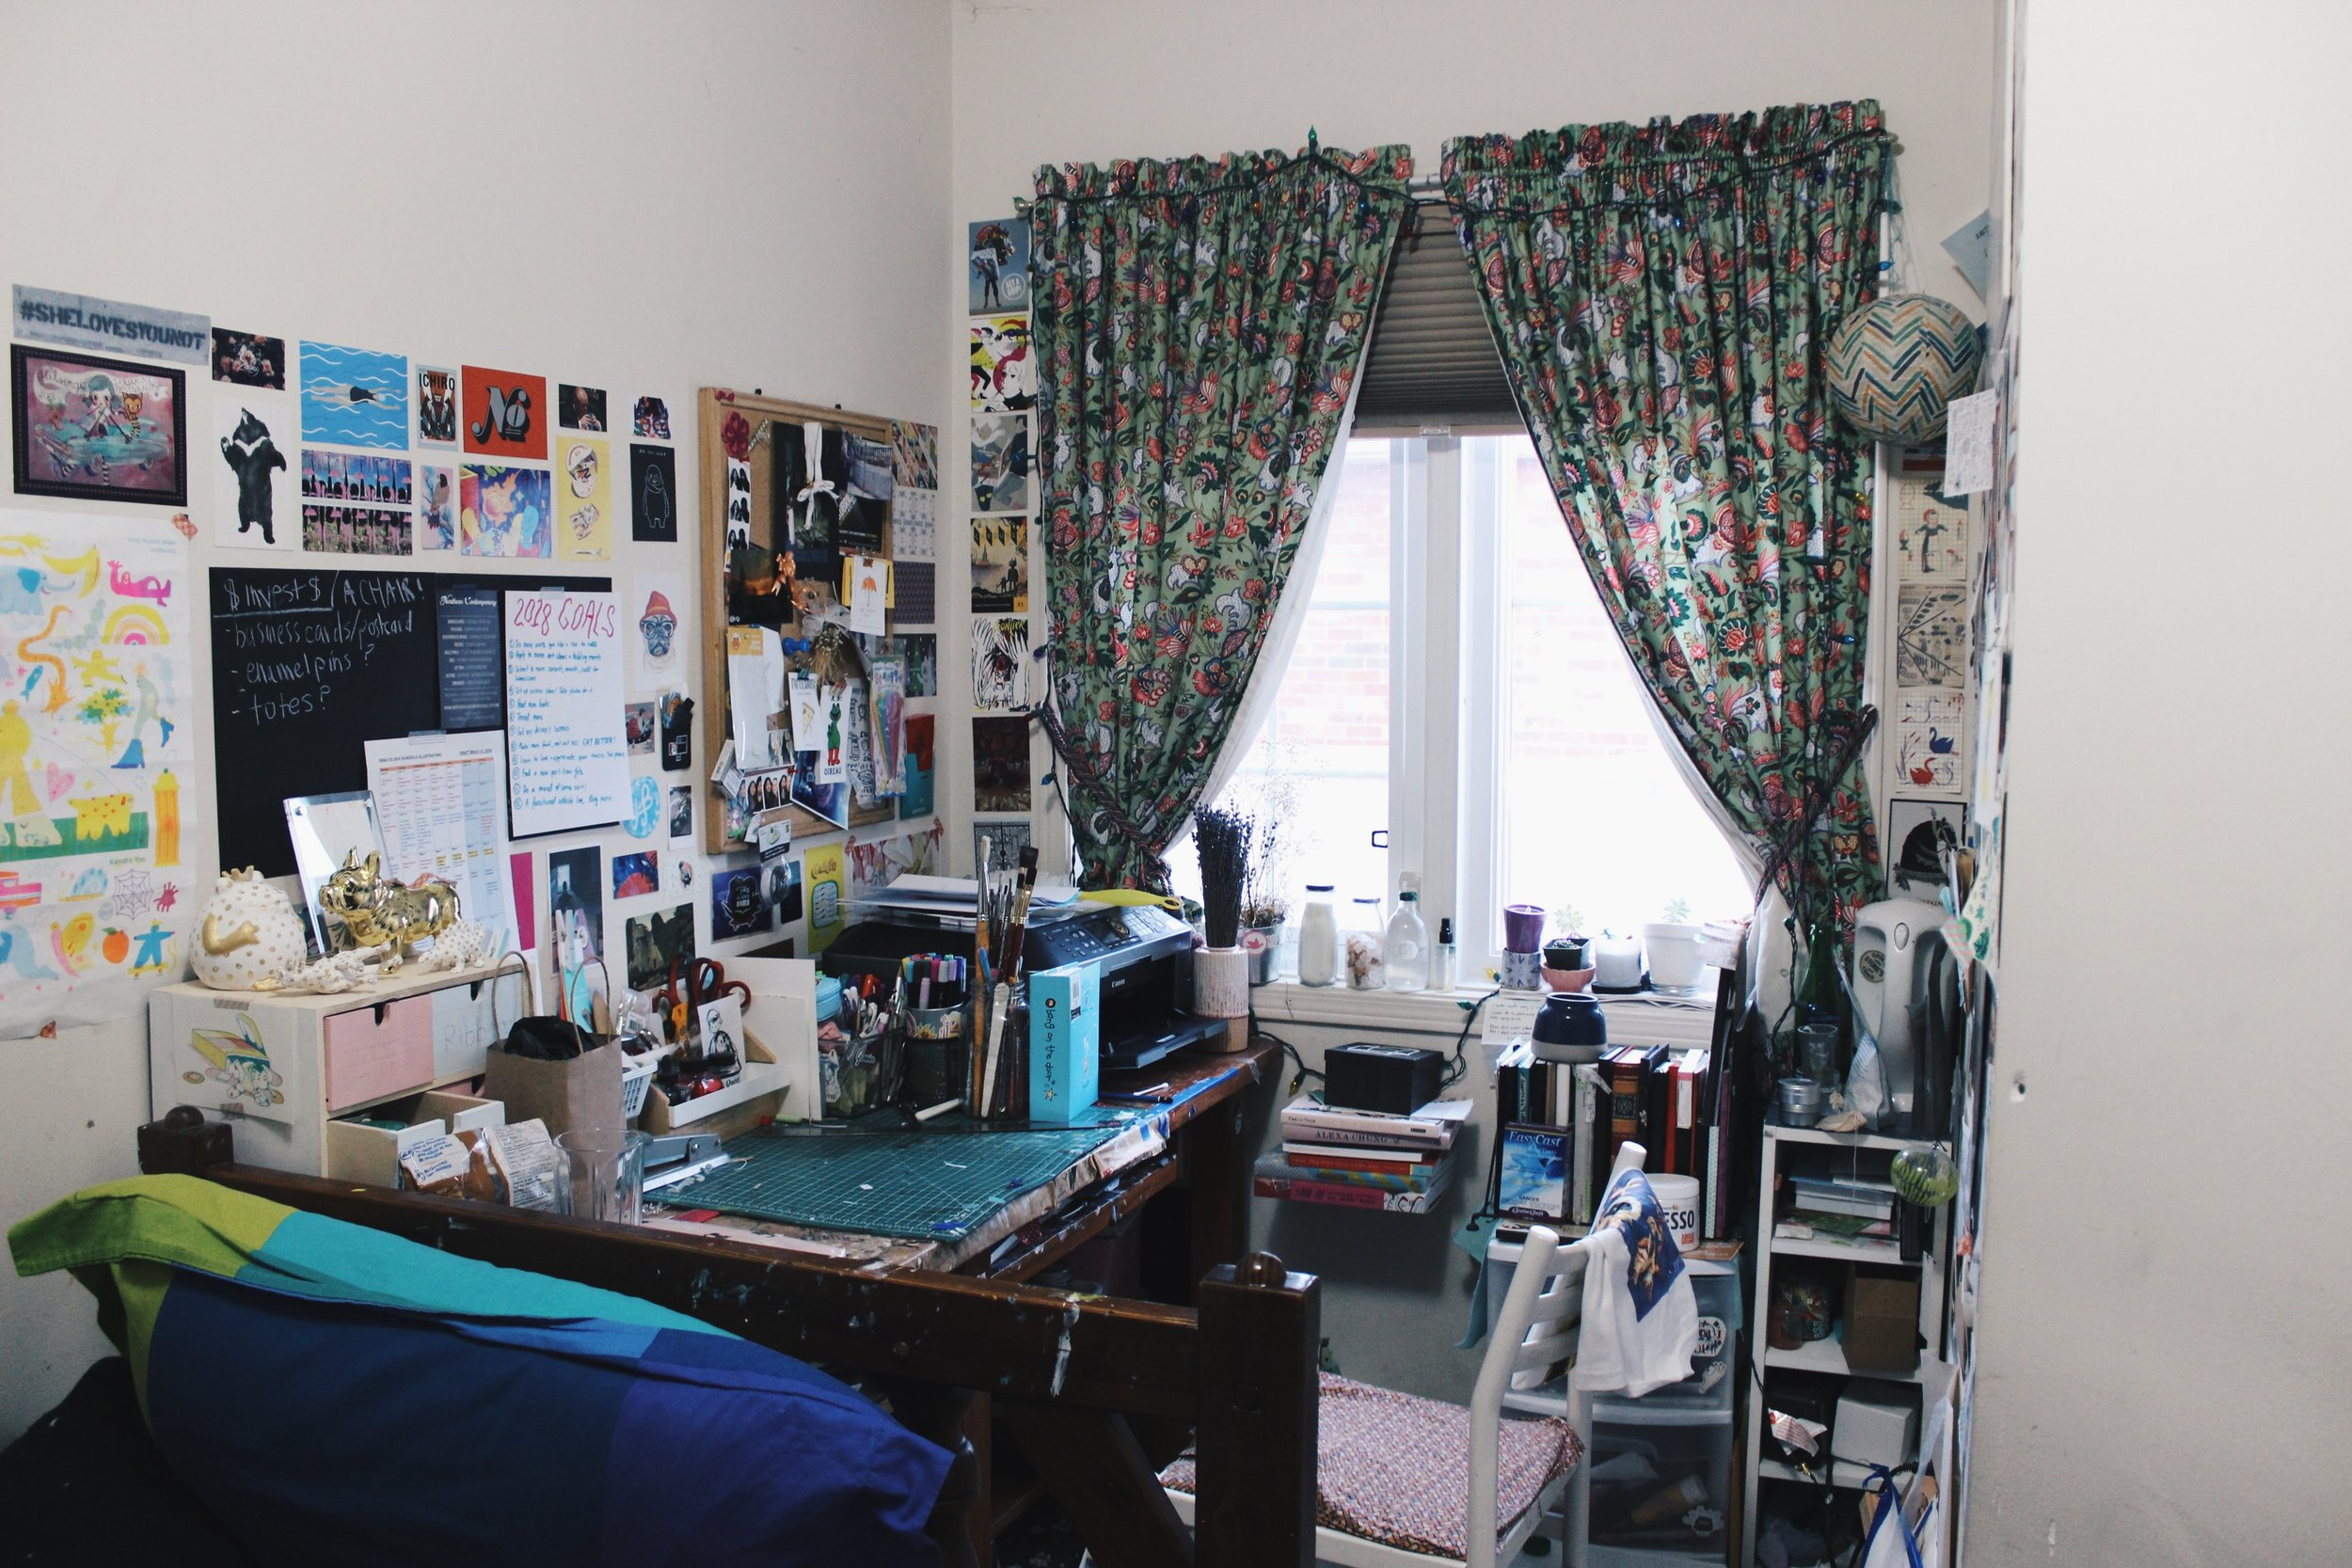 My room is 40% art workspace and 60% room.